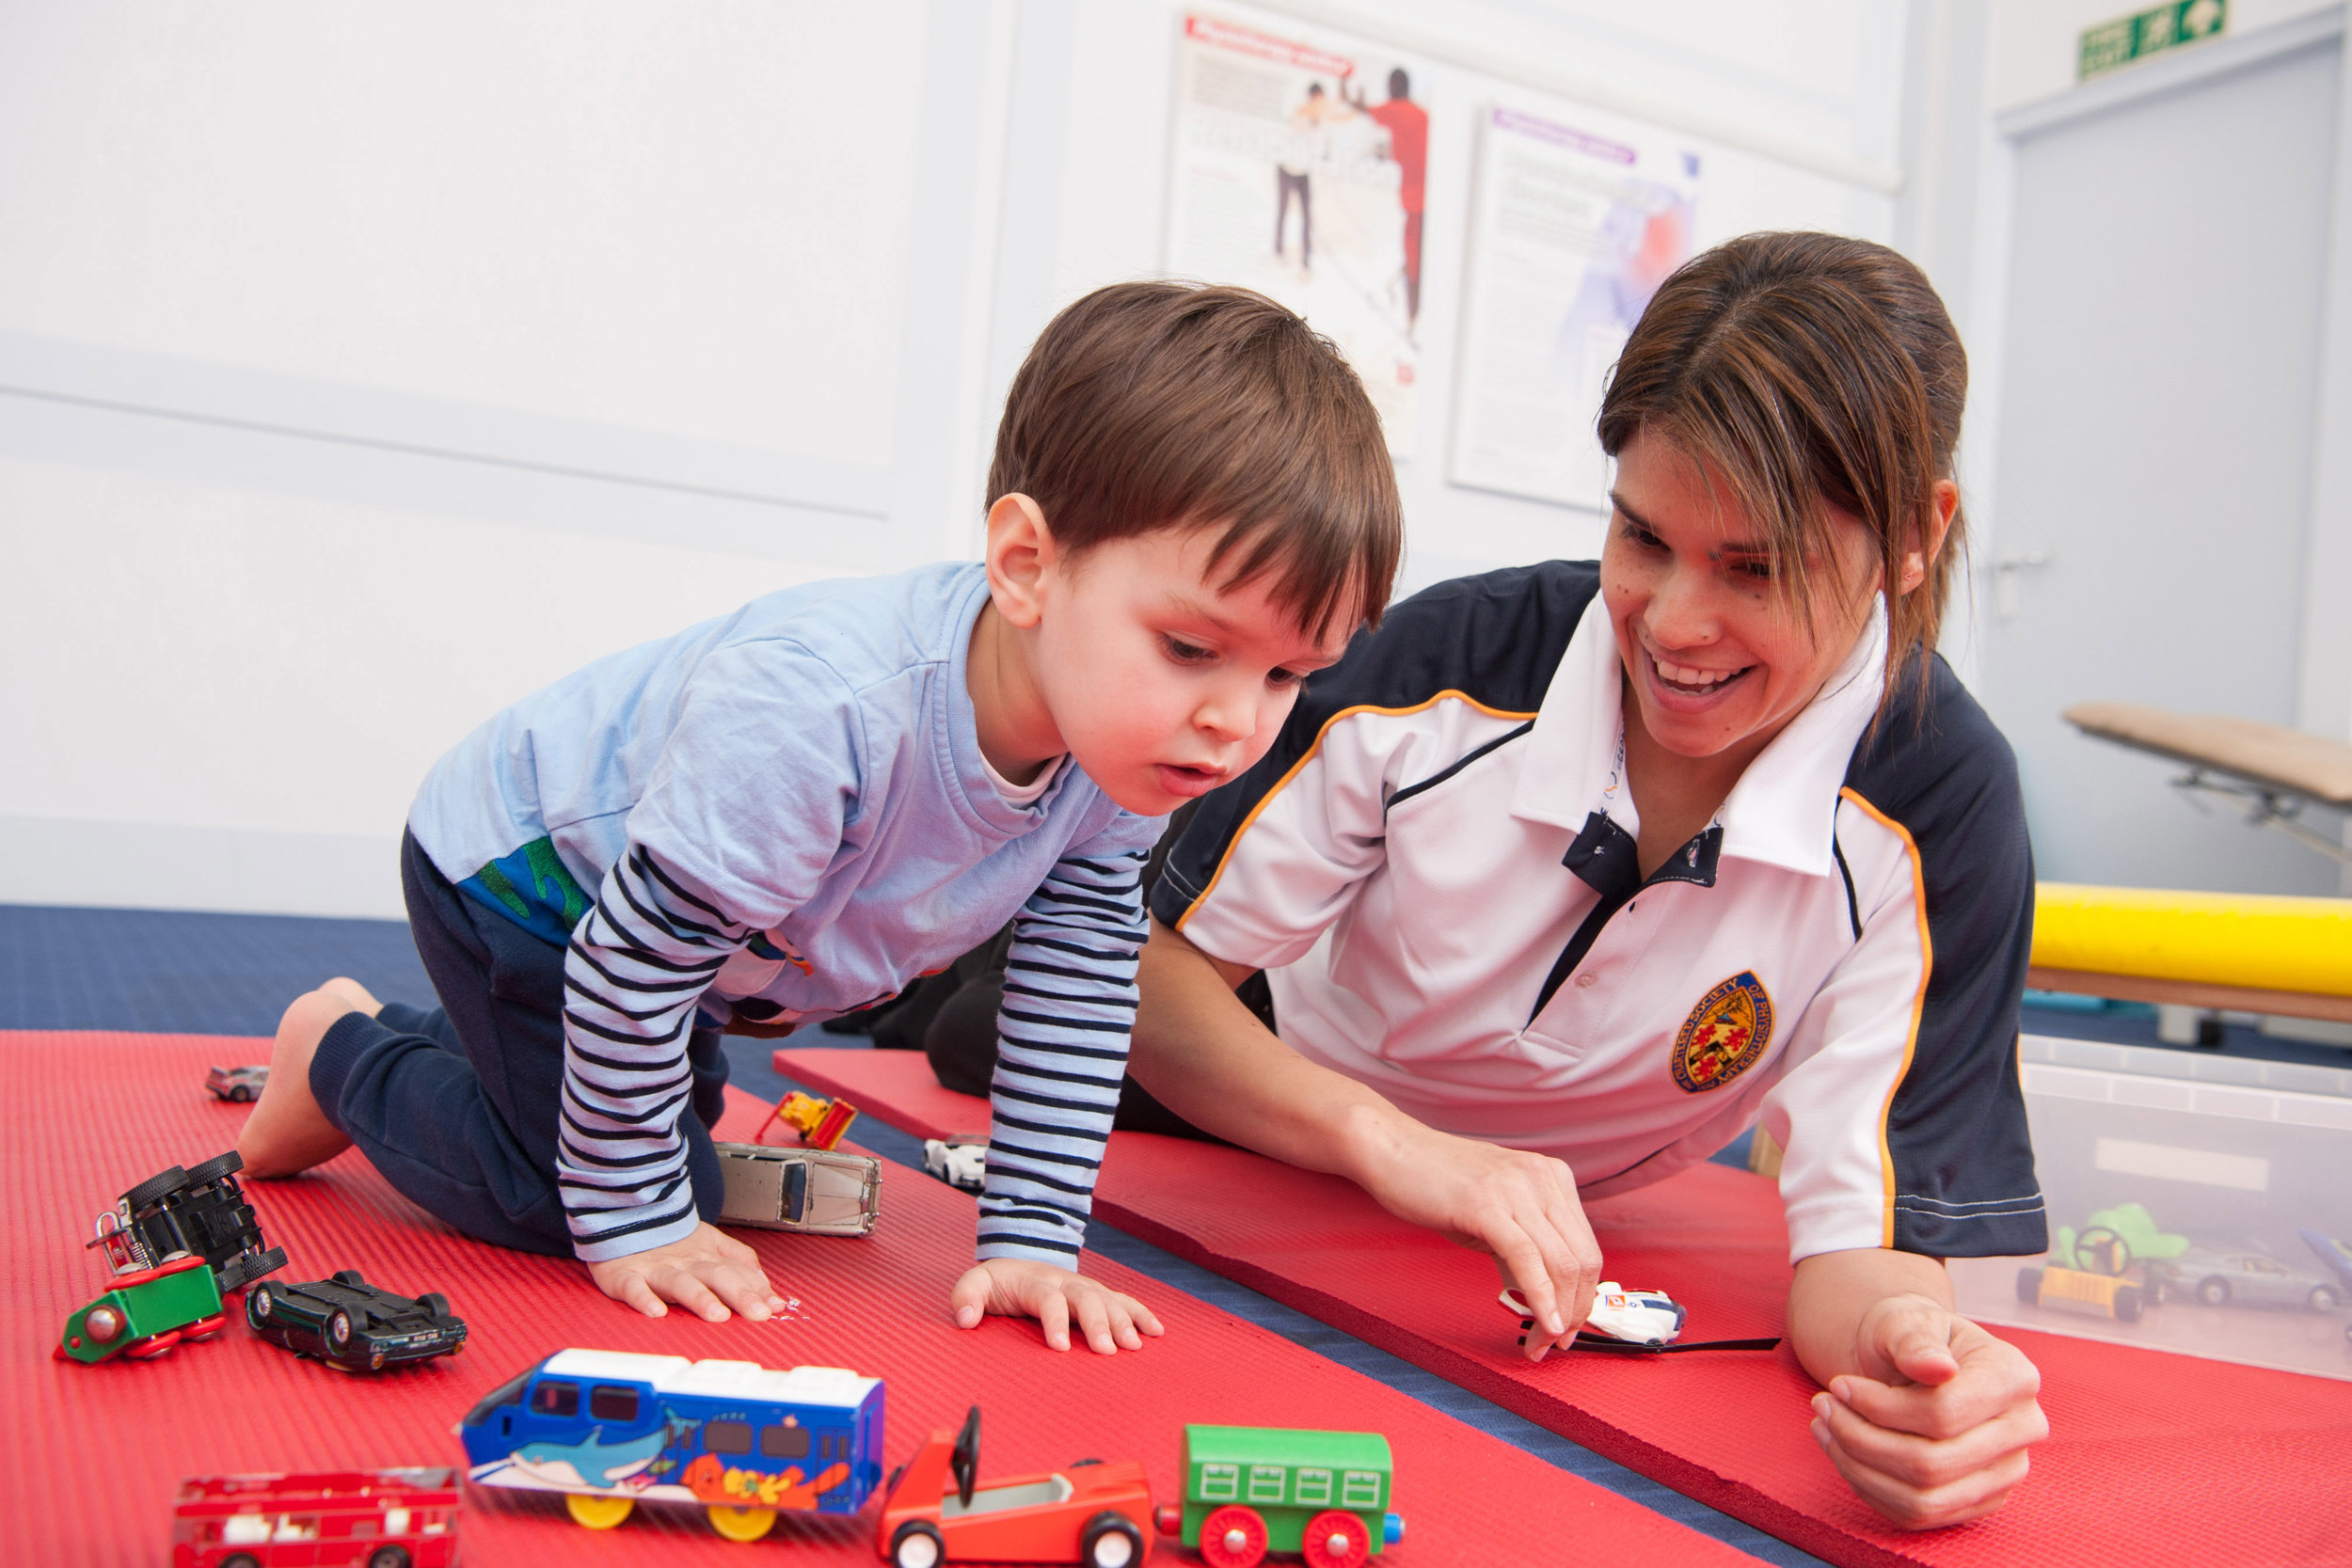 Physiotherapist playing with a child in play  environment